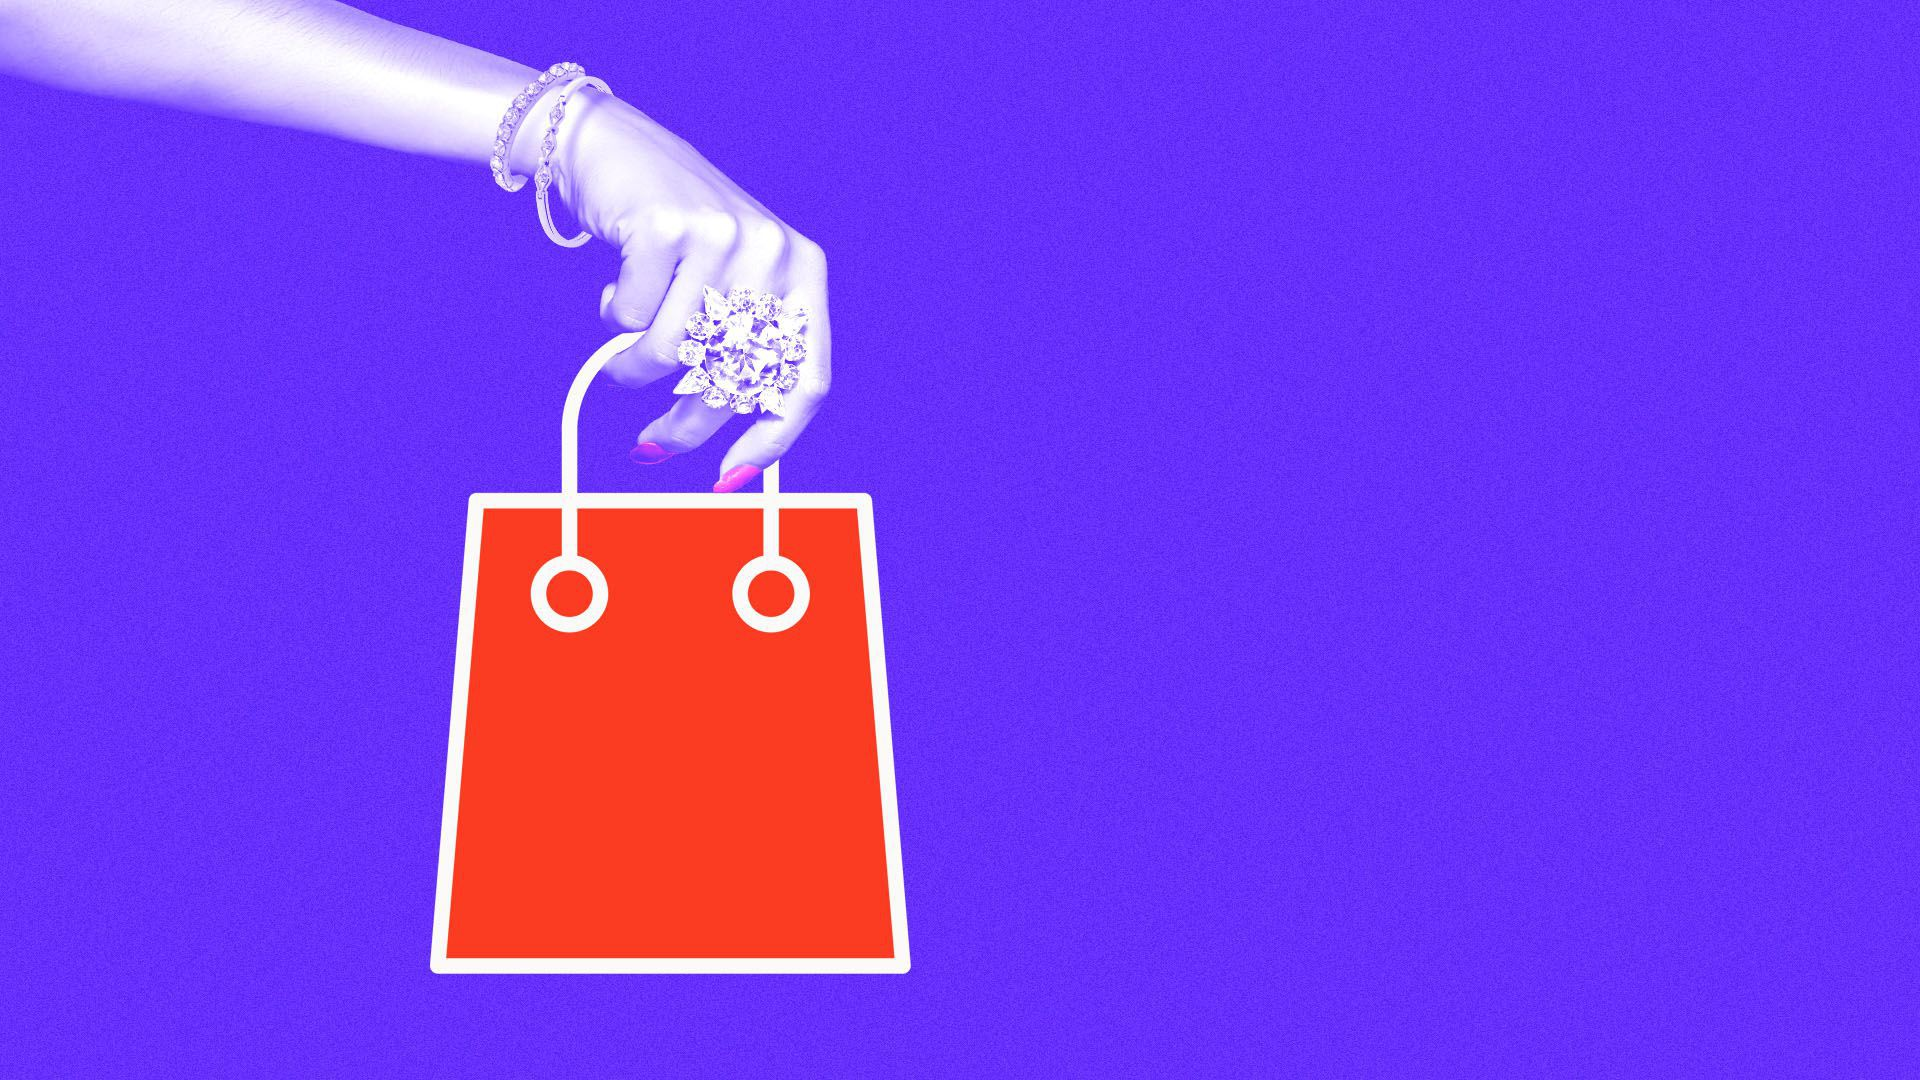 Walmart fumbles in the battle for wealthy shoppers - Axios